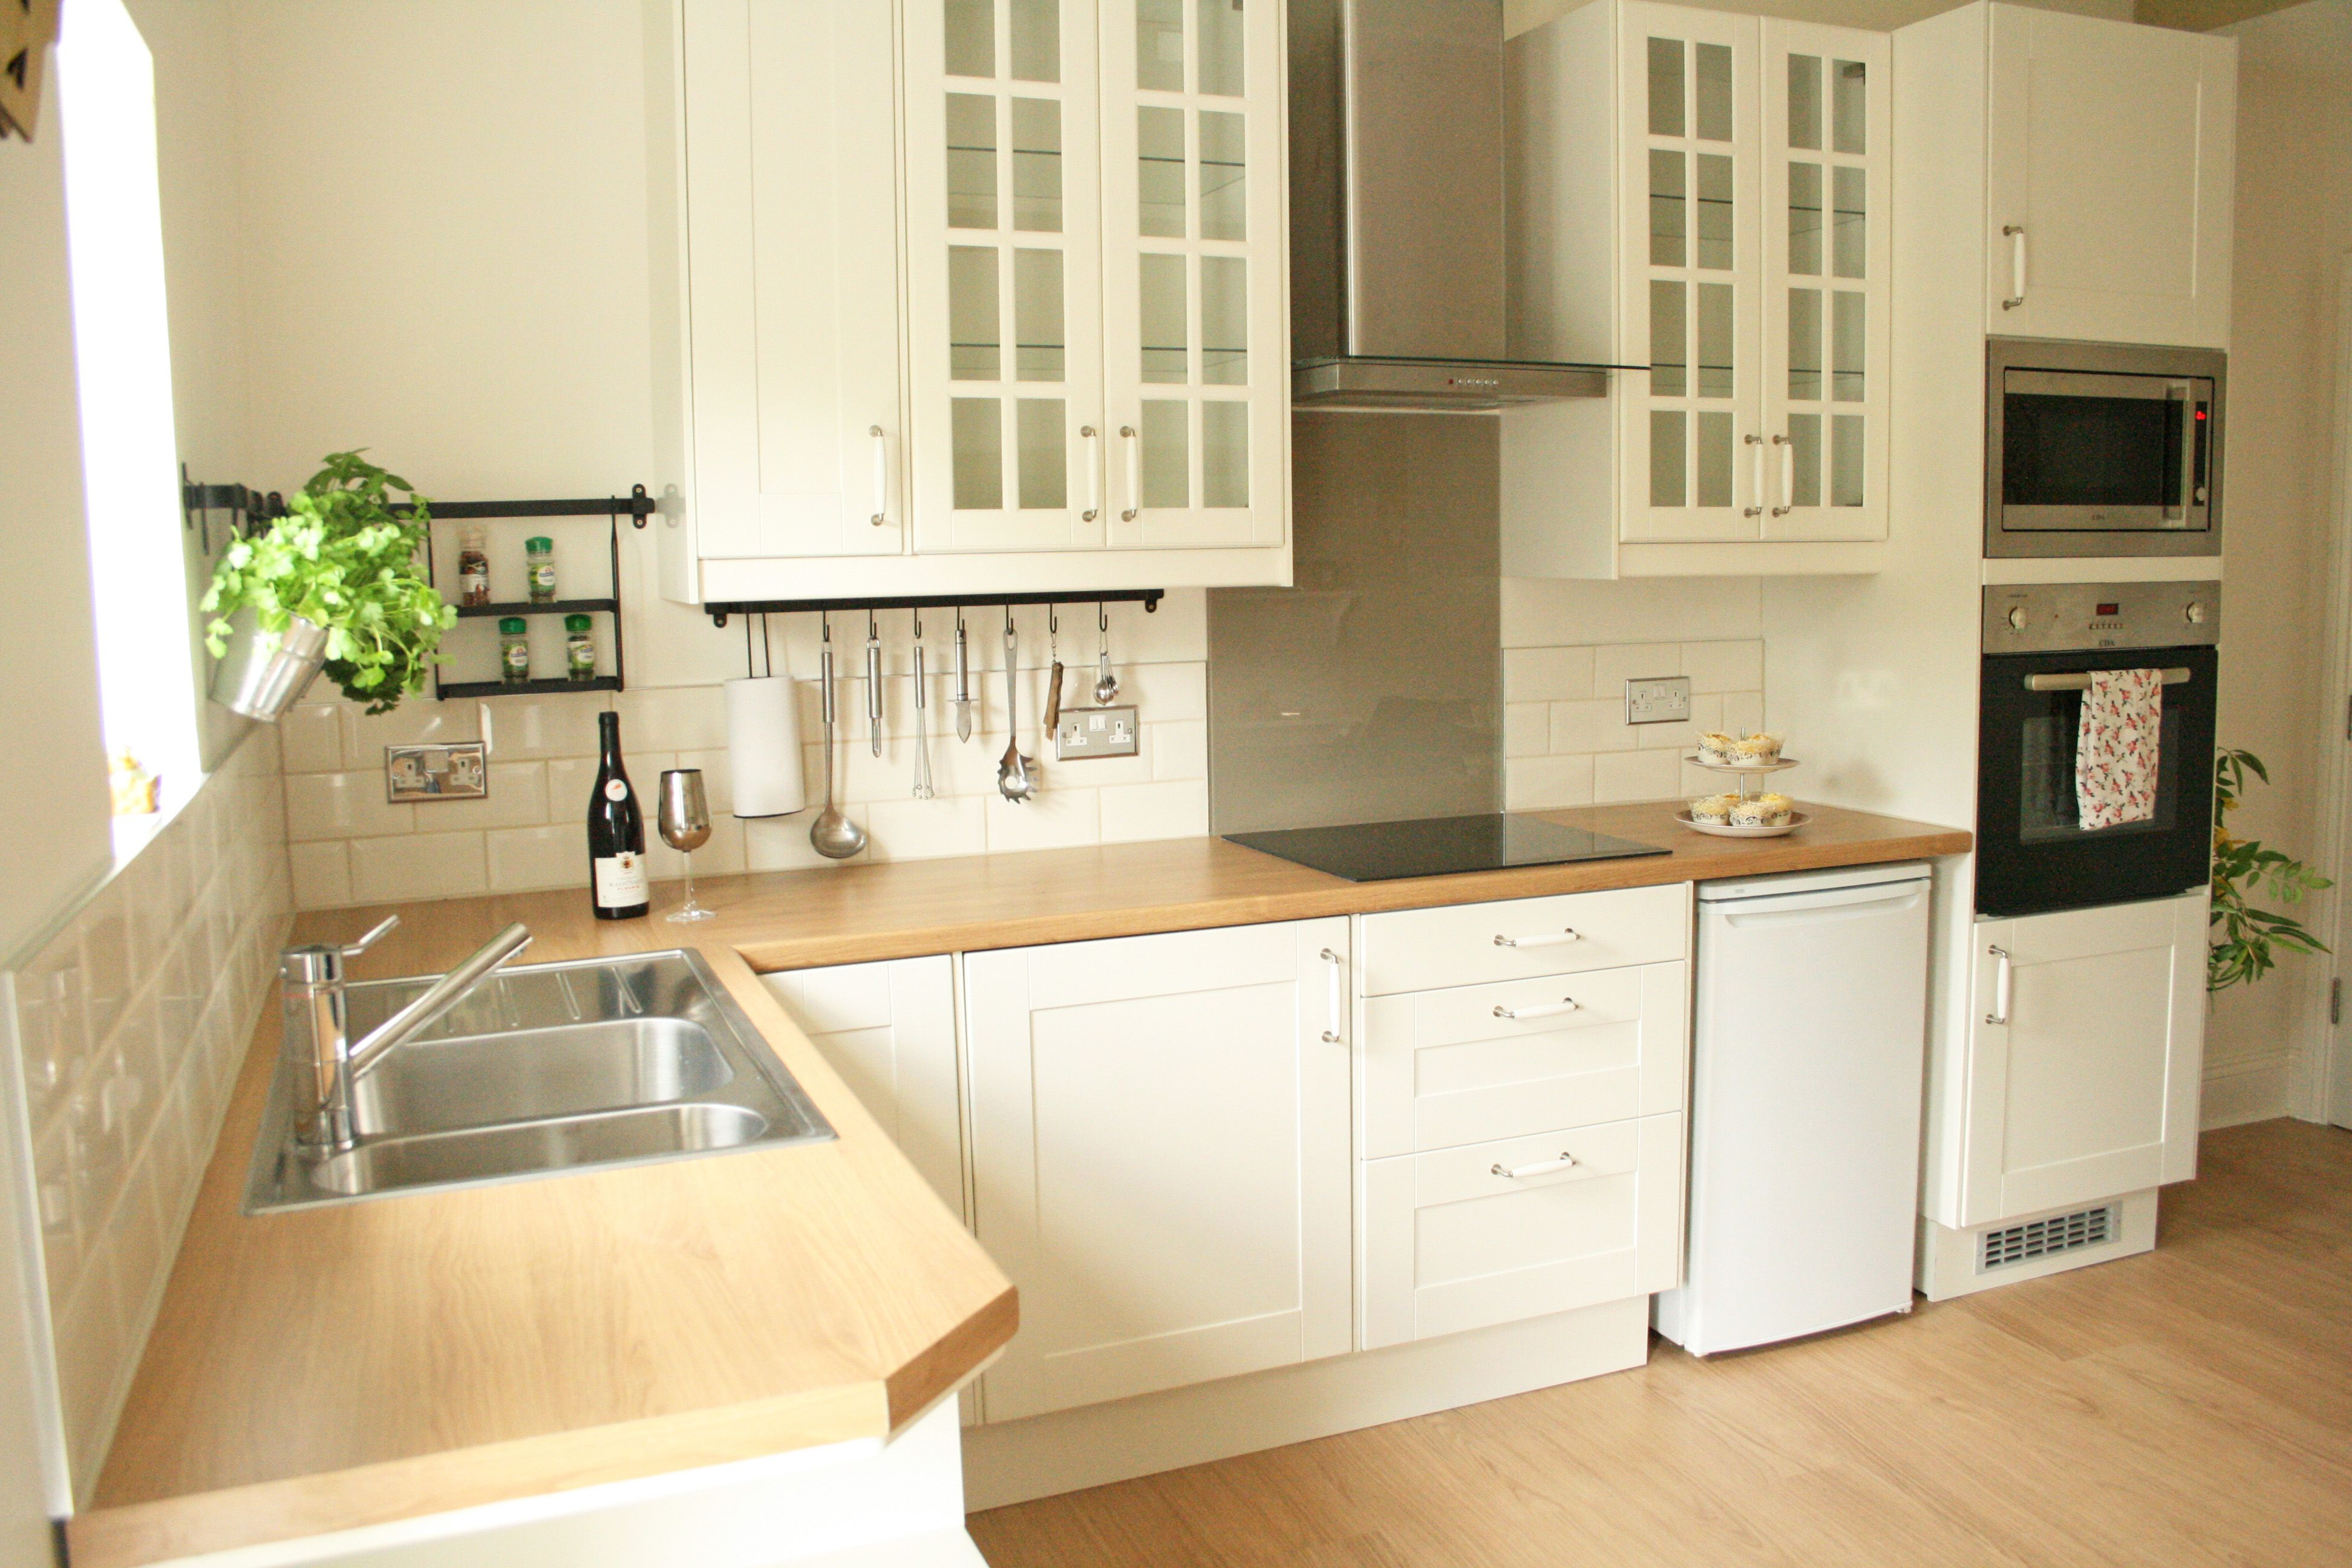 cream kitchen cabinets How to tile bathrooms or kitchens using Metro or subway tiles